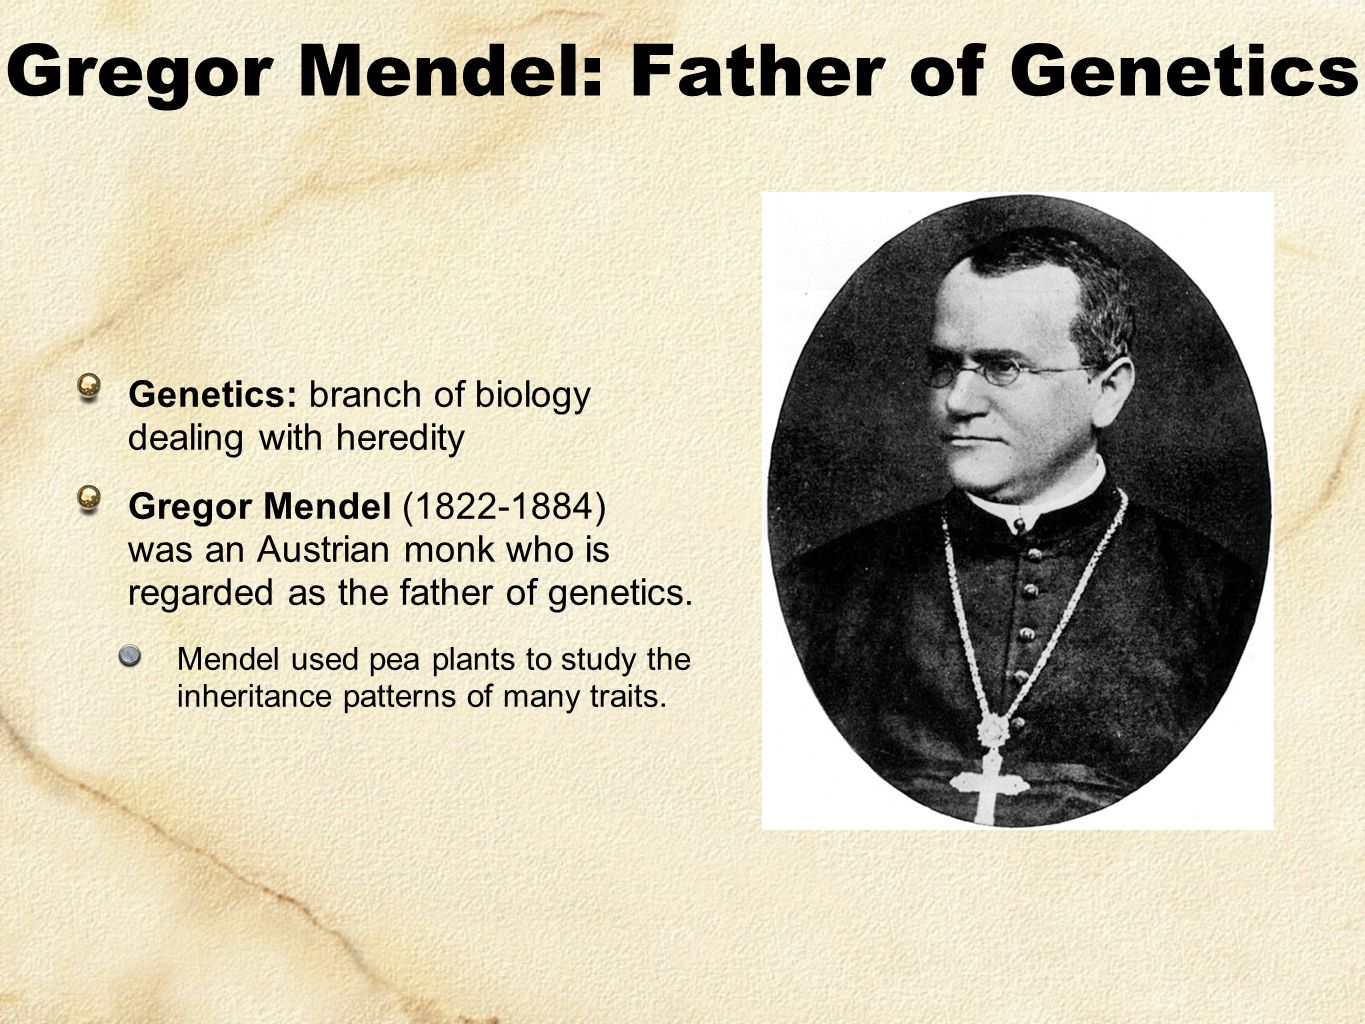 gregor mendel the father of genetics Gregor mendel is known as the father of genetics because of his breakthrough in the laws of inheritance he is the person who came up with the laws of inheritance, and how hereditary affects various generations even today, these basic principles are used in the most complicated genetic researches.